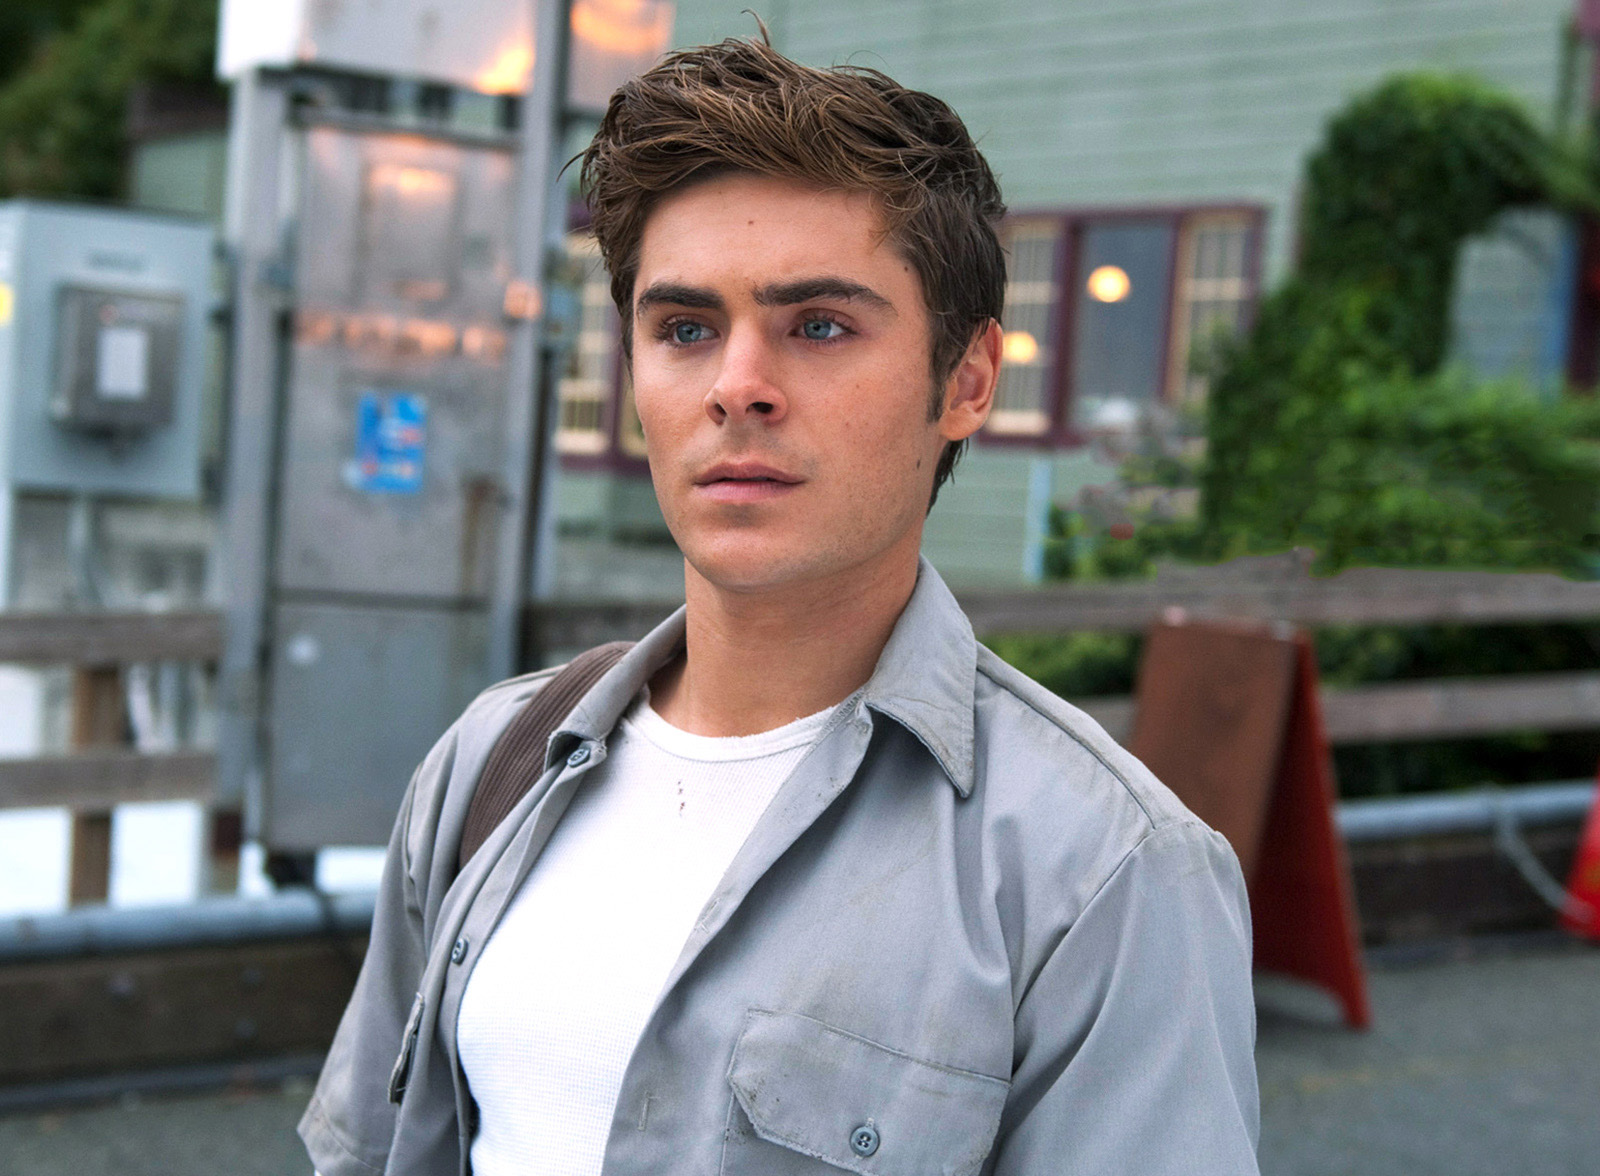 Zac Efron movies wallpapers• PoPoPics.com Zac Efron Movies